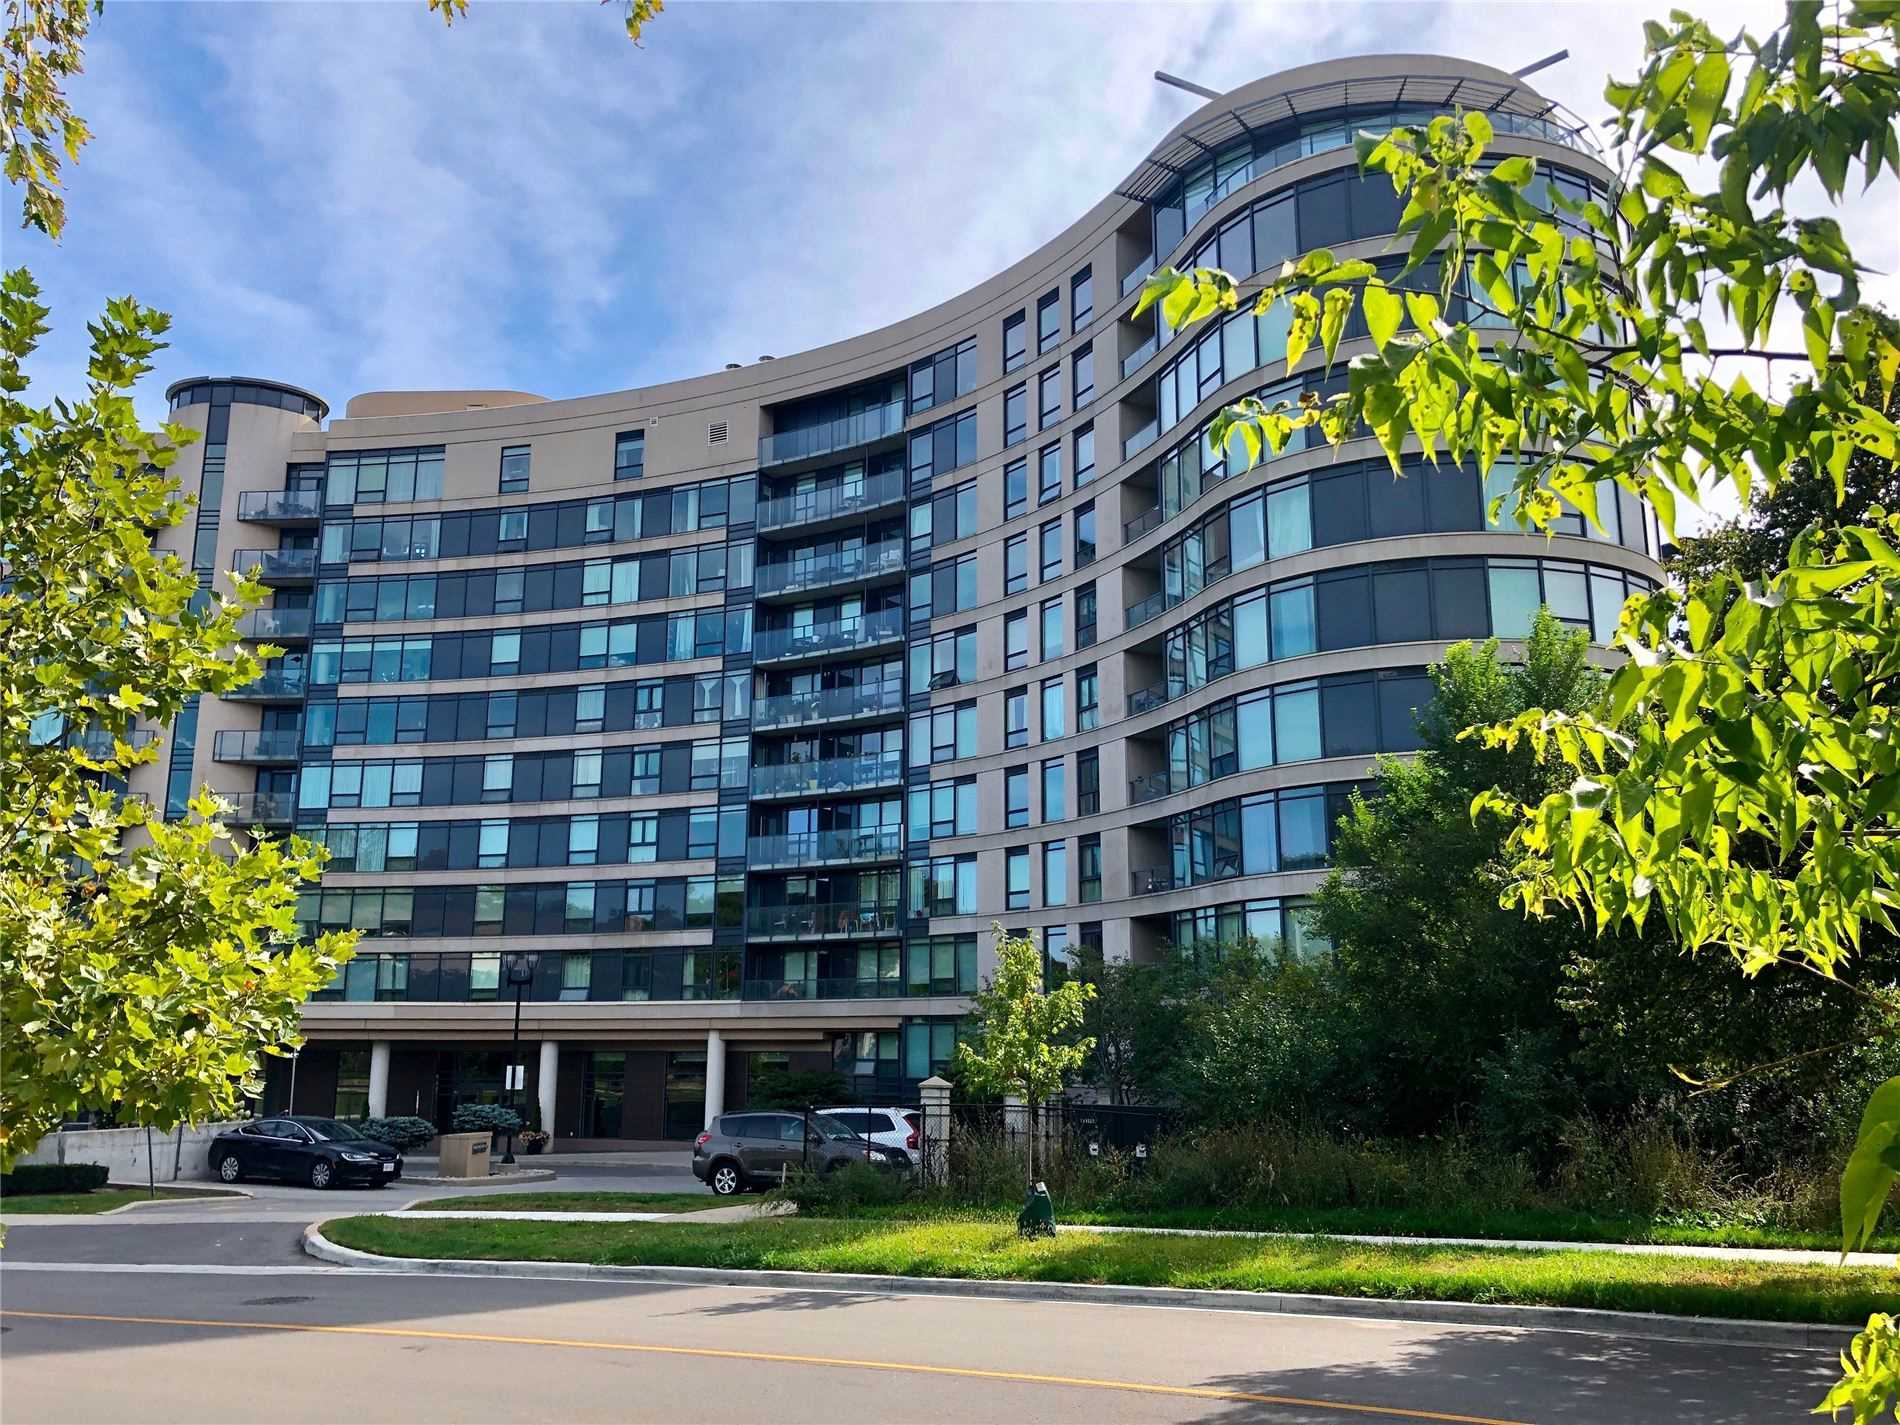 For Rent: 402 - 18 Valley Woods Road, Toronto, ON | 1 Bed, 1 Bath Condo for $2500.00. See 18 photos!